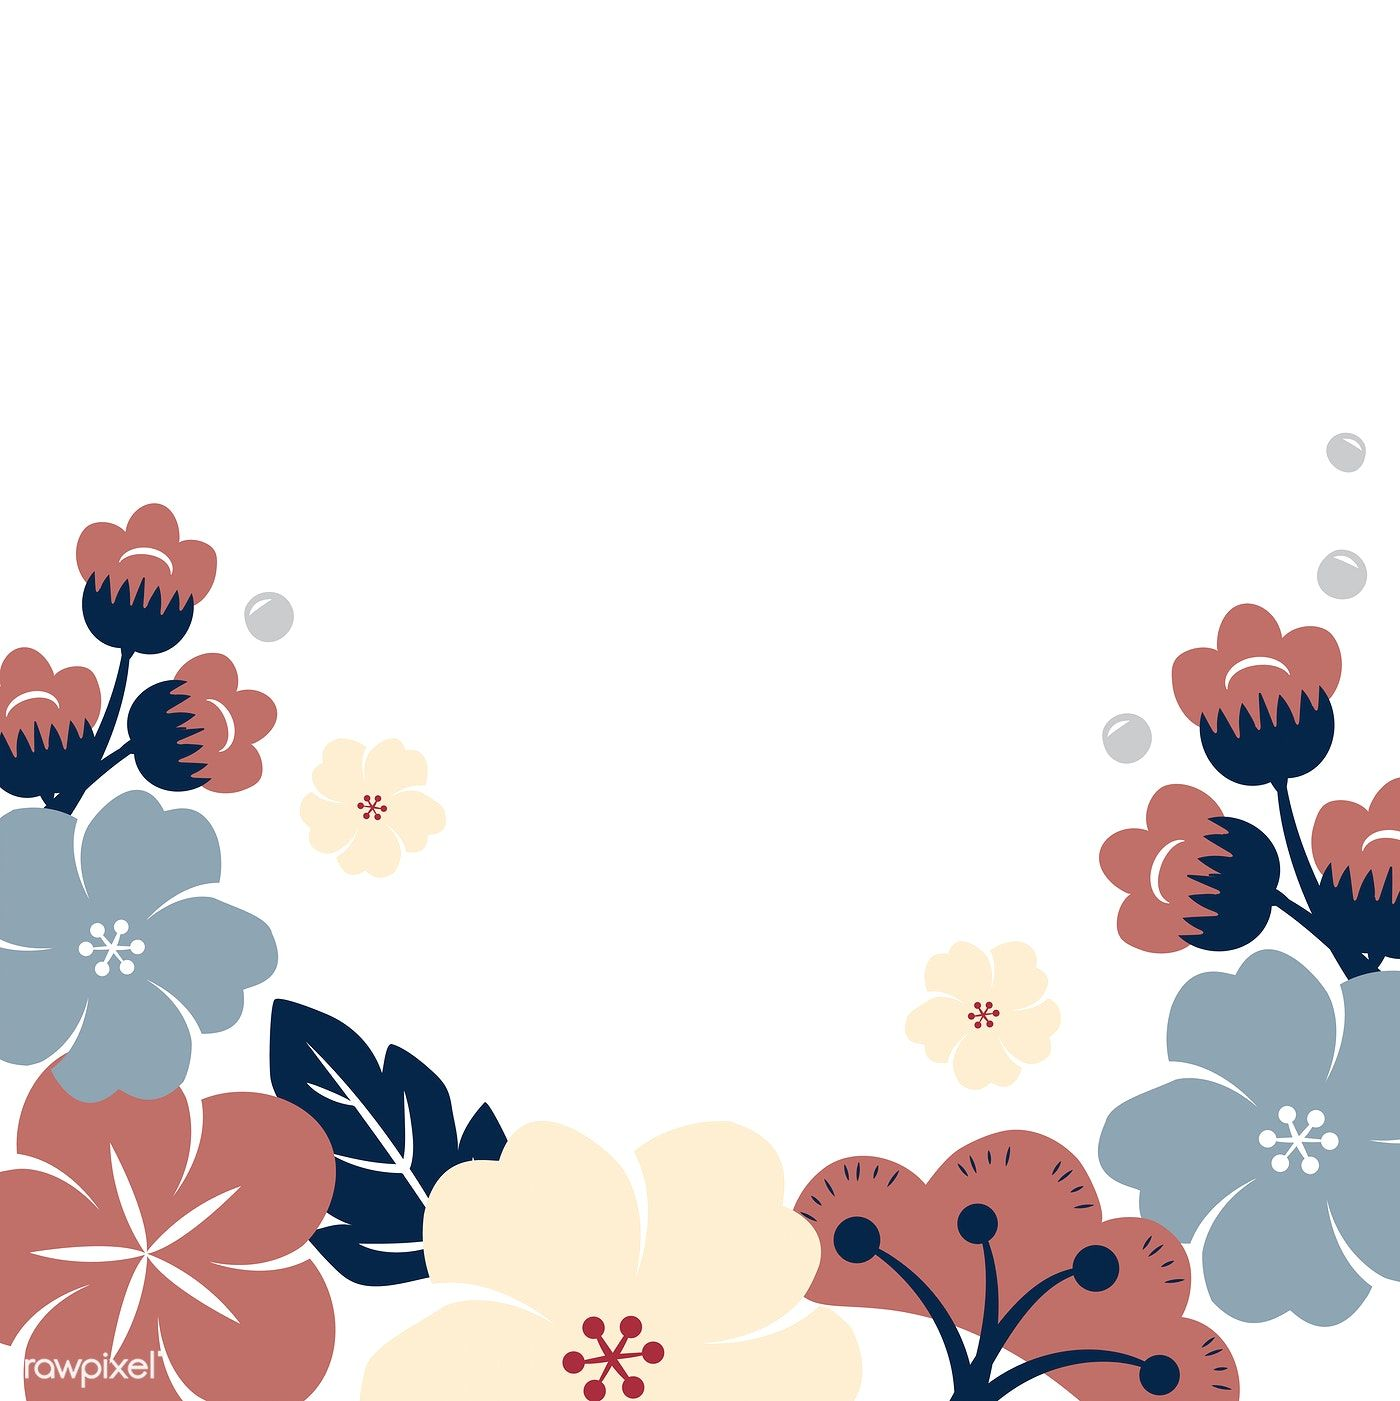 Colorful Floral Border Background Vector Free Image By Rawpixel Com Kappy Kappy Vector Free Japanese Blossom Flower Icons